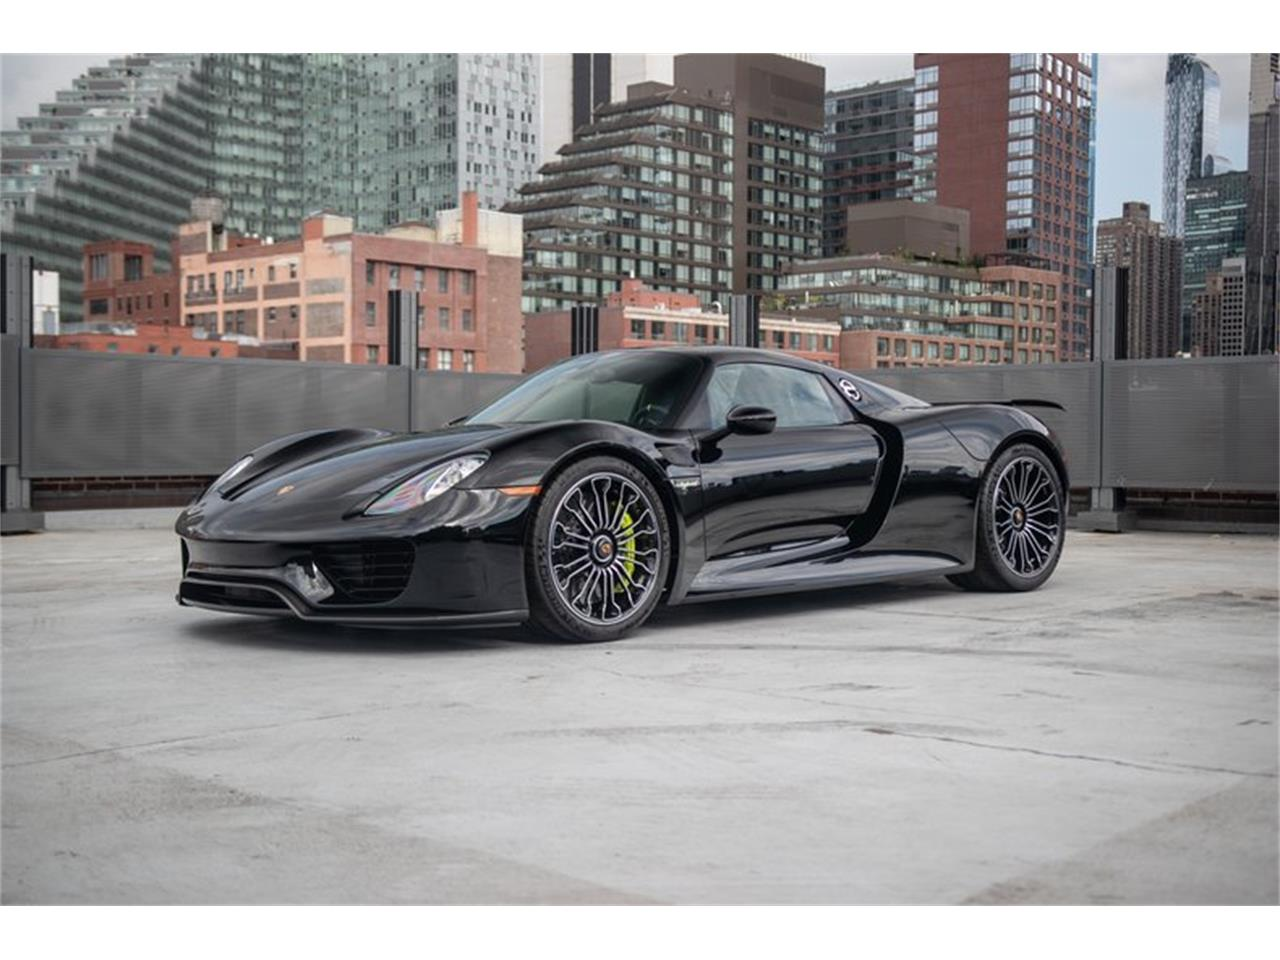 2014 Porsche 918 Spyder (CC-1259587) for sale in Roslyn, New York